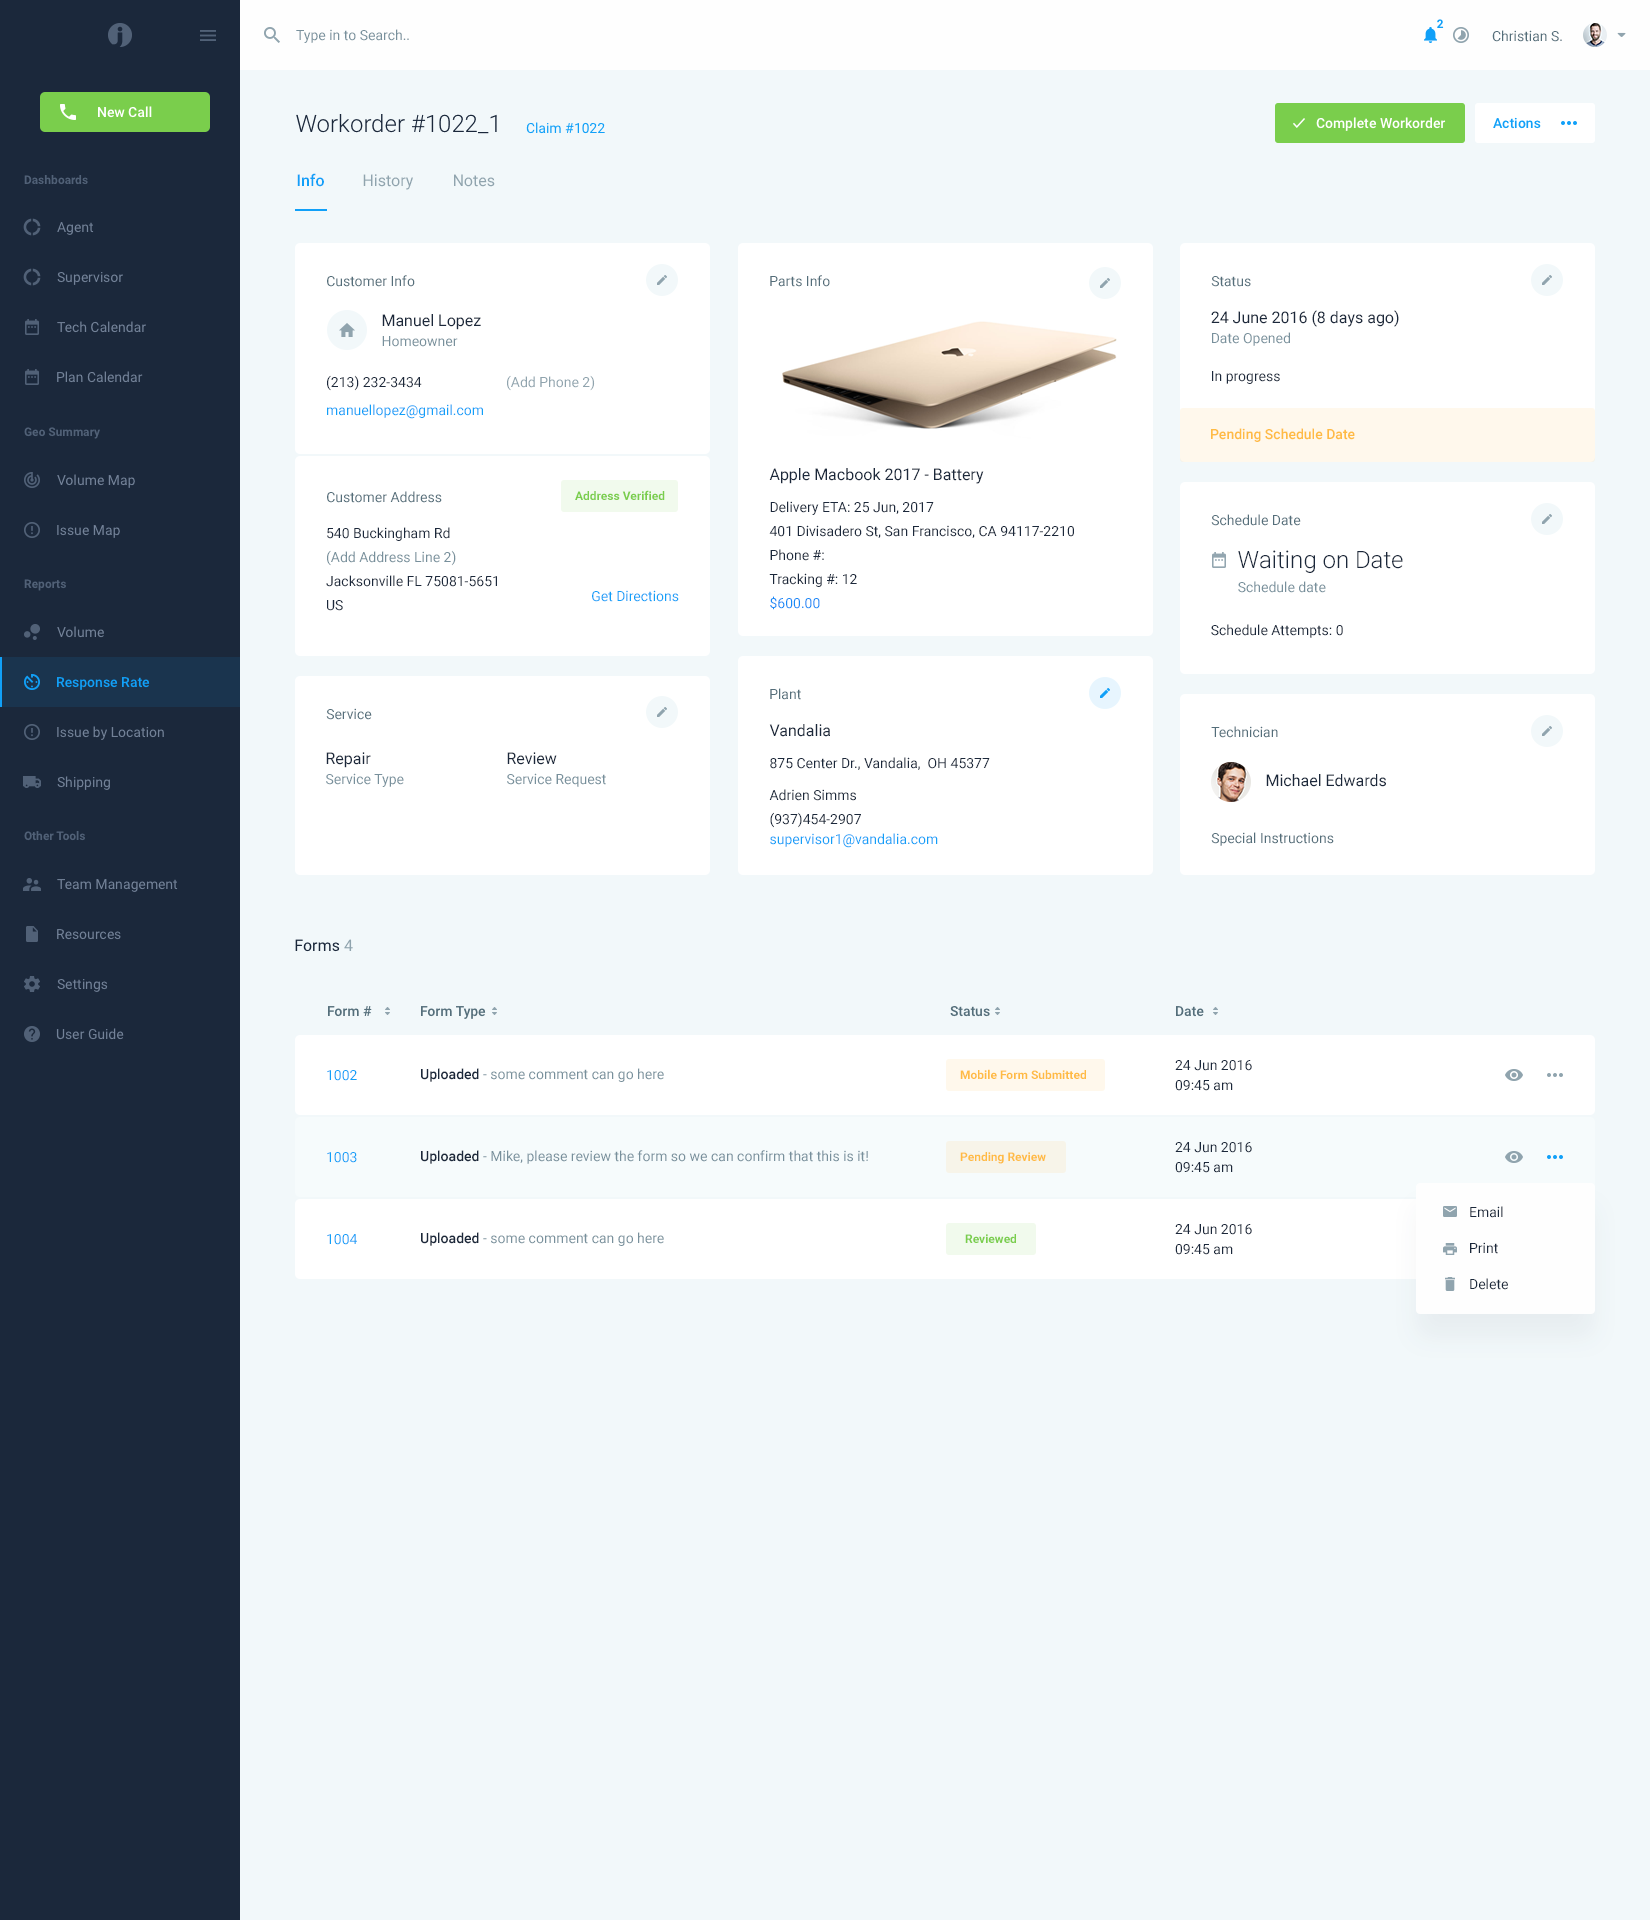 InsightPro - Workorder | Dashboard Page Designs | Pinterest ...